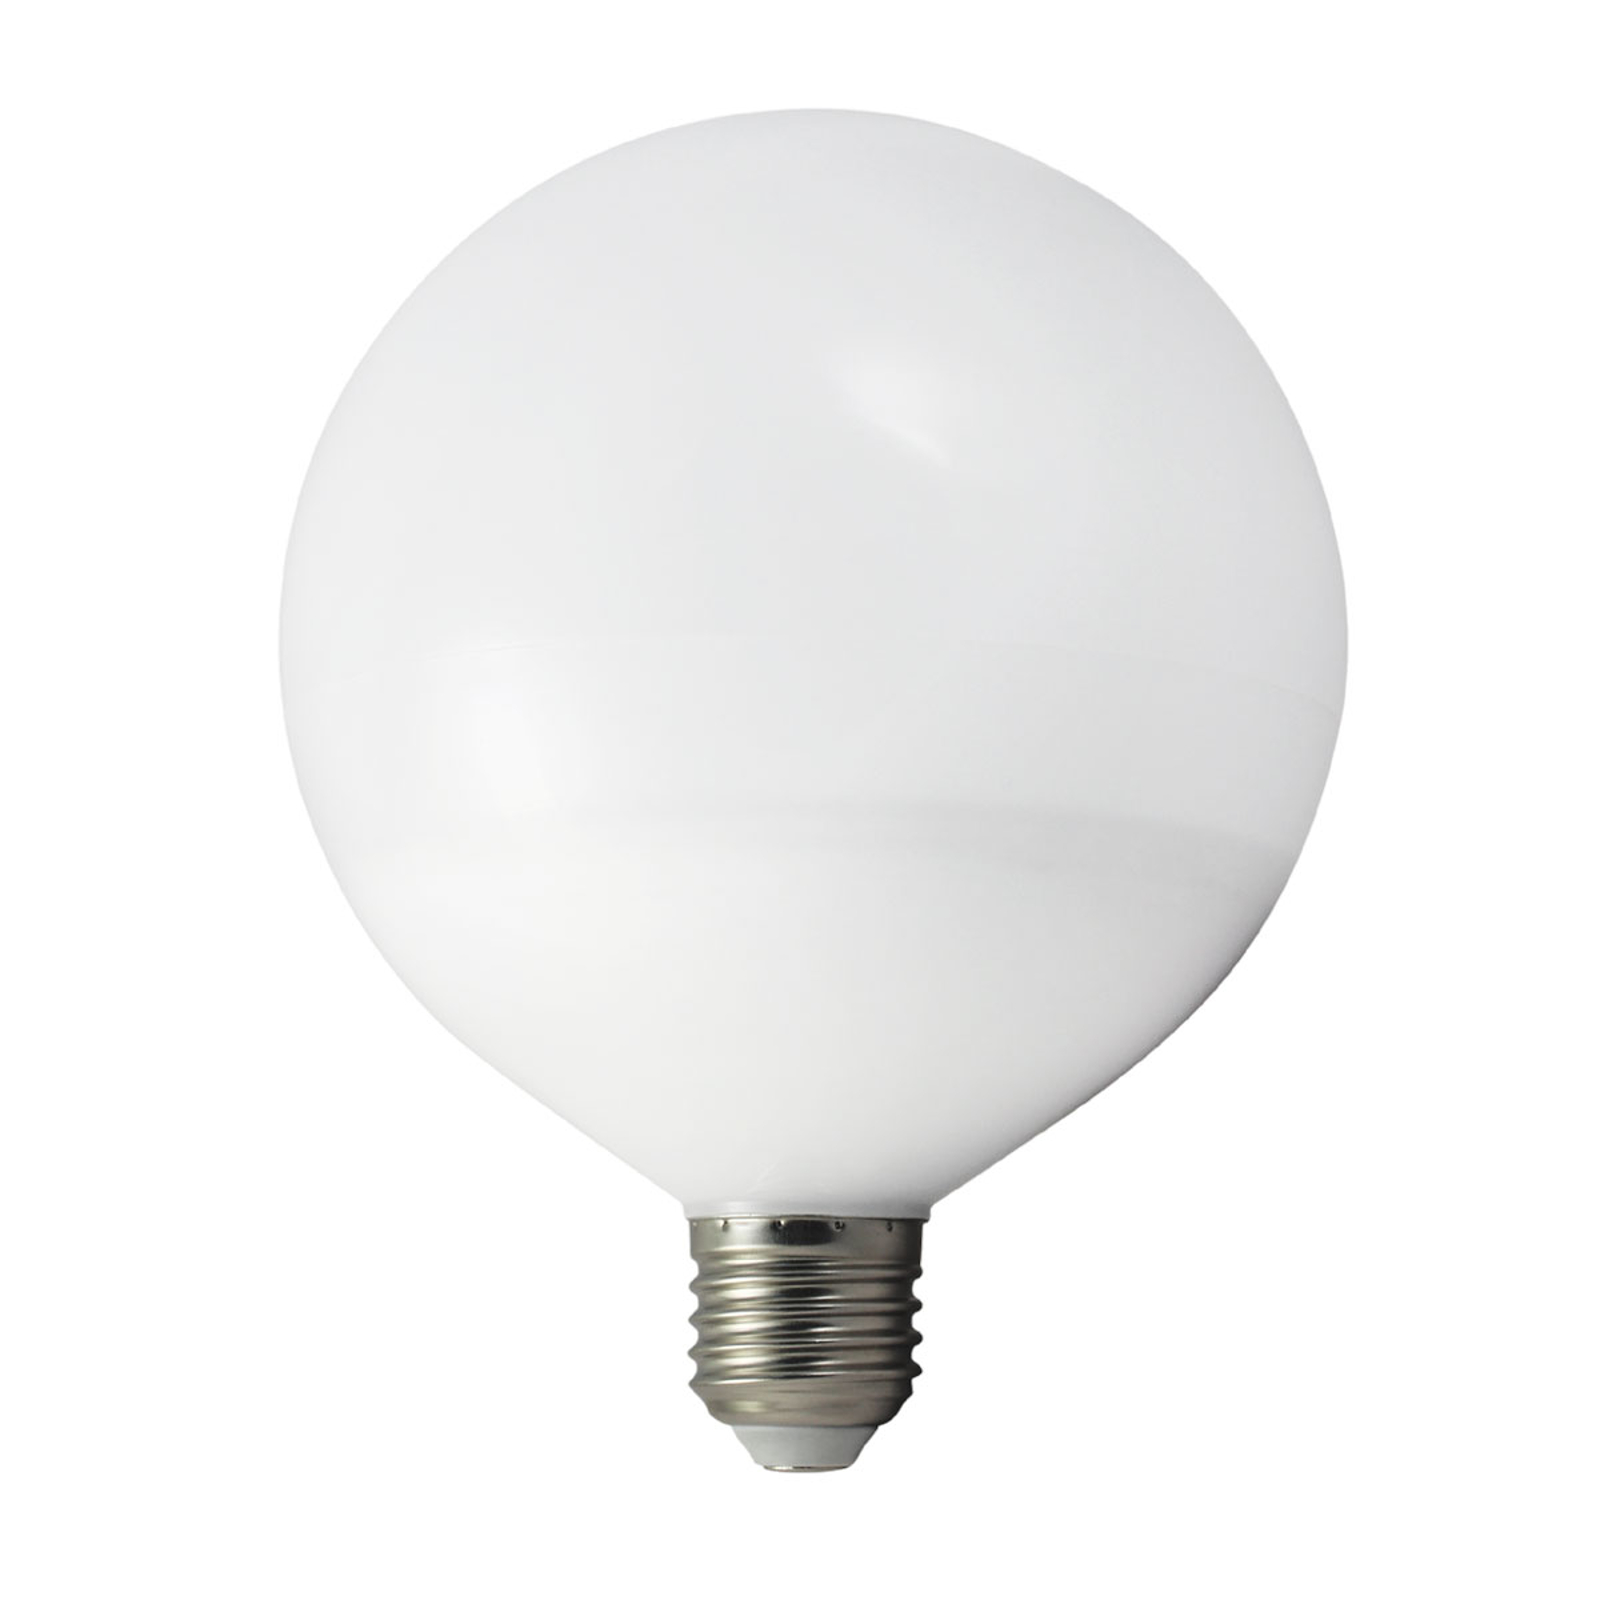 E27 15W 827 Led Globe ledlamp, warmwit